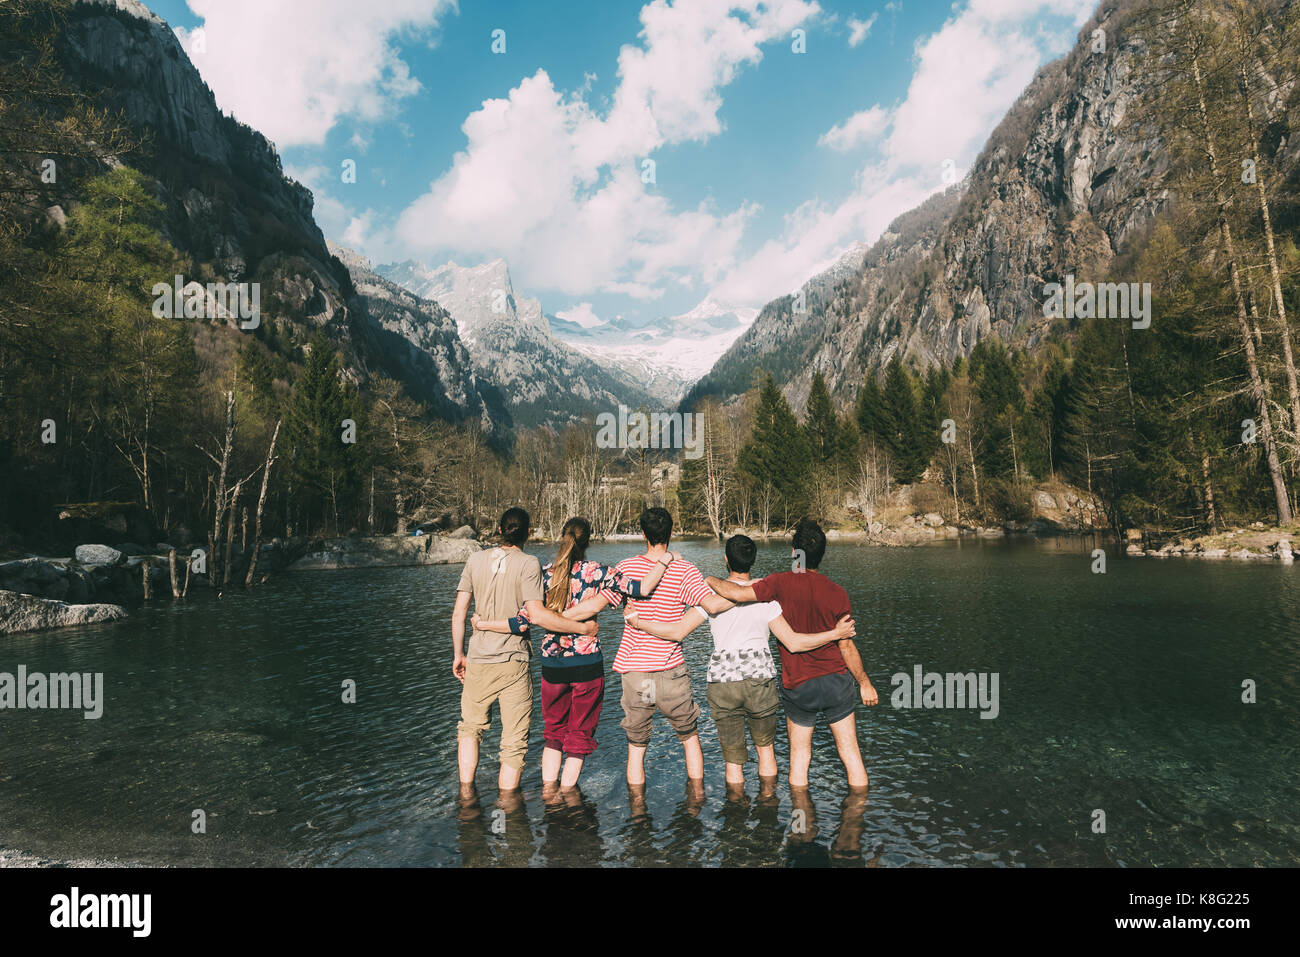 Rear view of five adult friends ankle deep in mountain lake, Lombardy, Italy - Stock Image